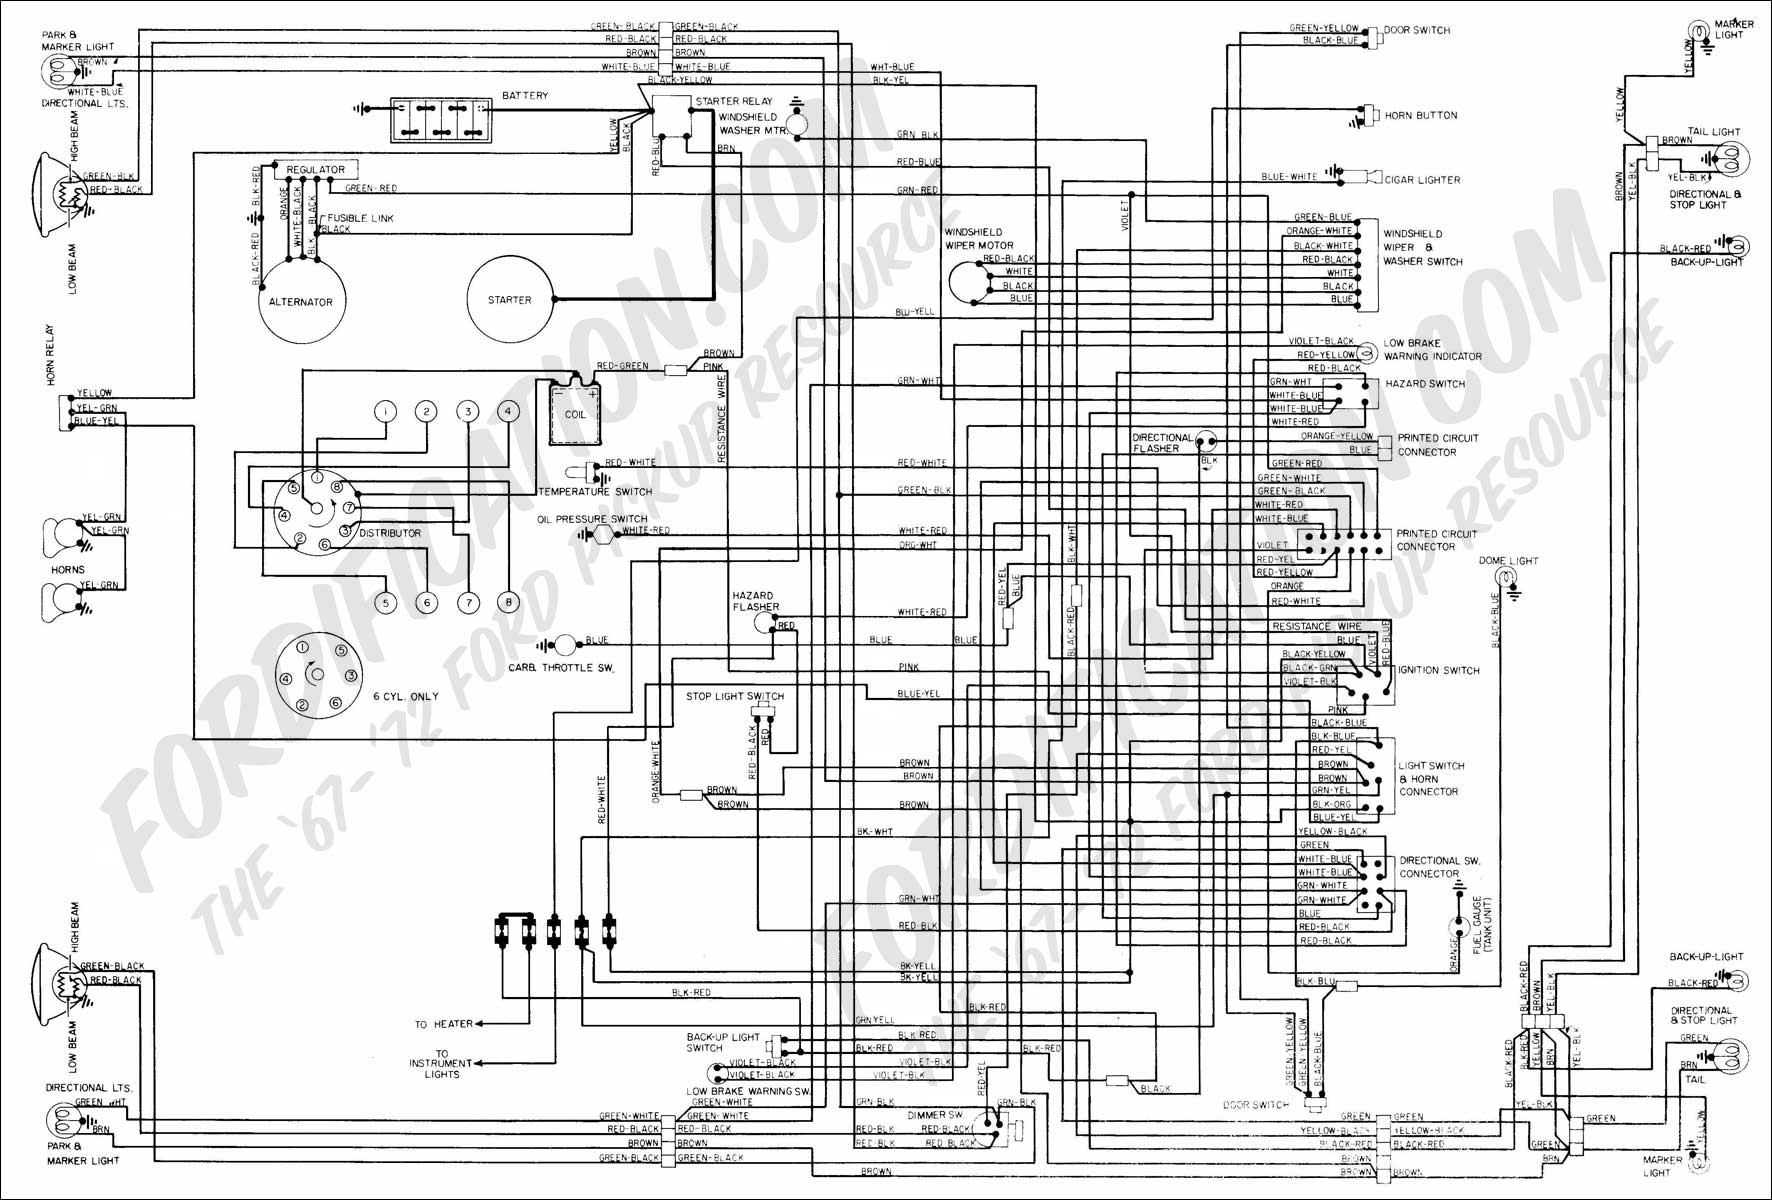 1989 F Series Ignition Switch Wiring Diagram Reinvent Your Tractor 2008 Ford Truck Diagrams Detailed Schematics Rh Antonartgallery Com Chevy Lawn Mower